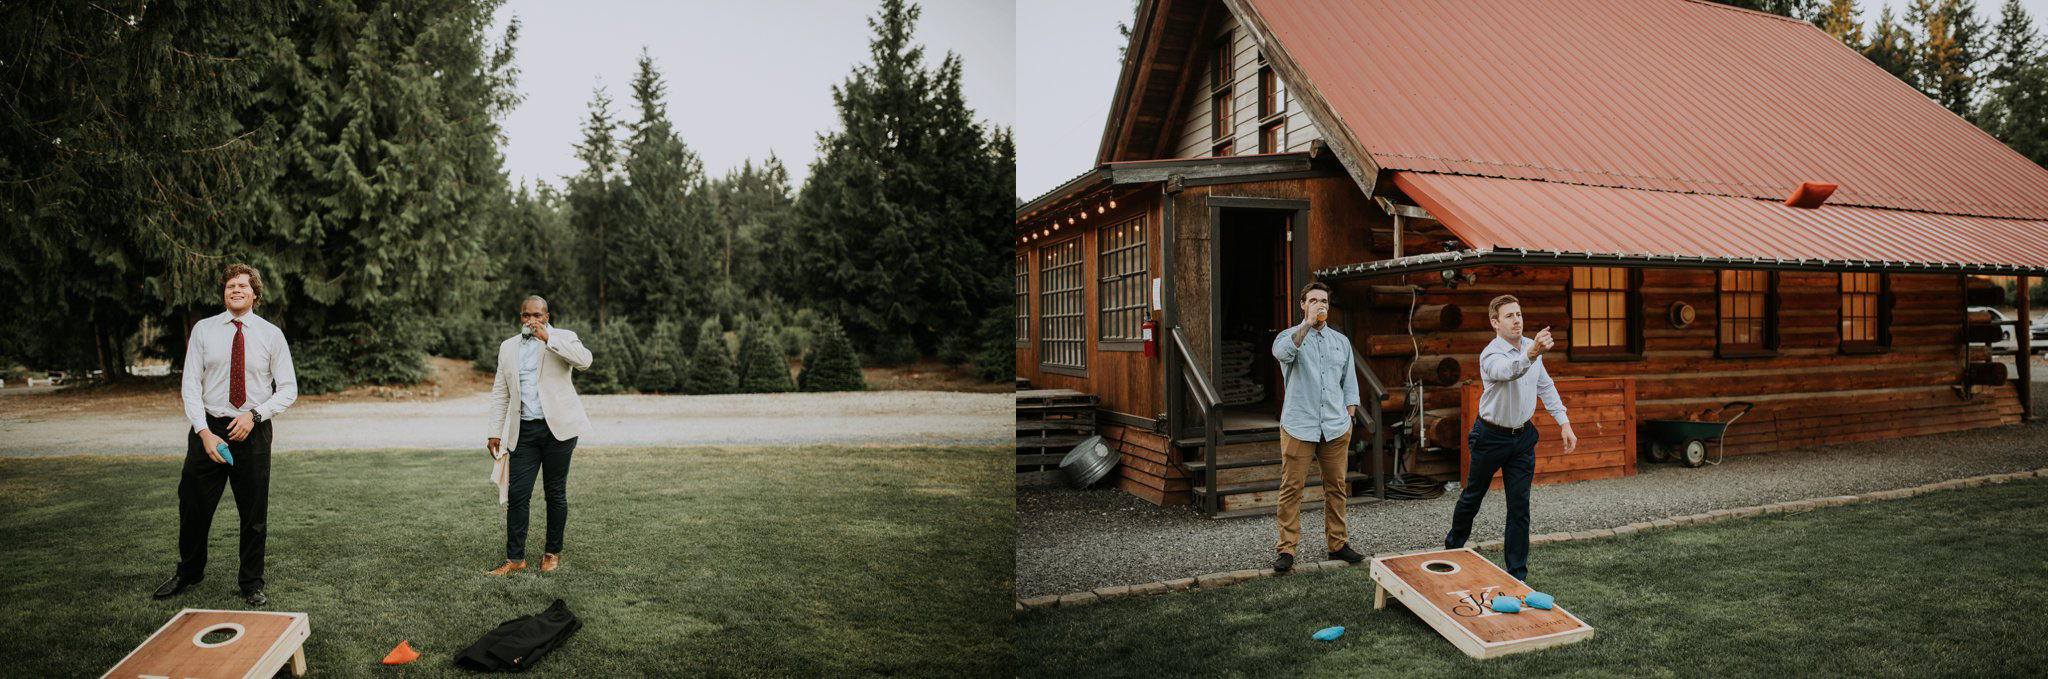 trinity-tree-farm-issaquah-washington-wedding-seattle-lifestyle-photographer-caitlyn-nikula-photography-123.jpg